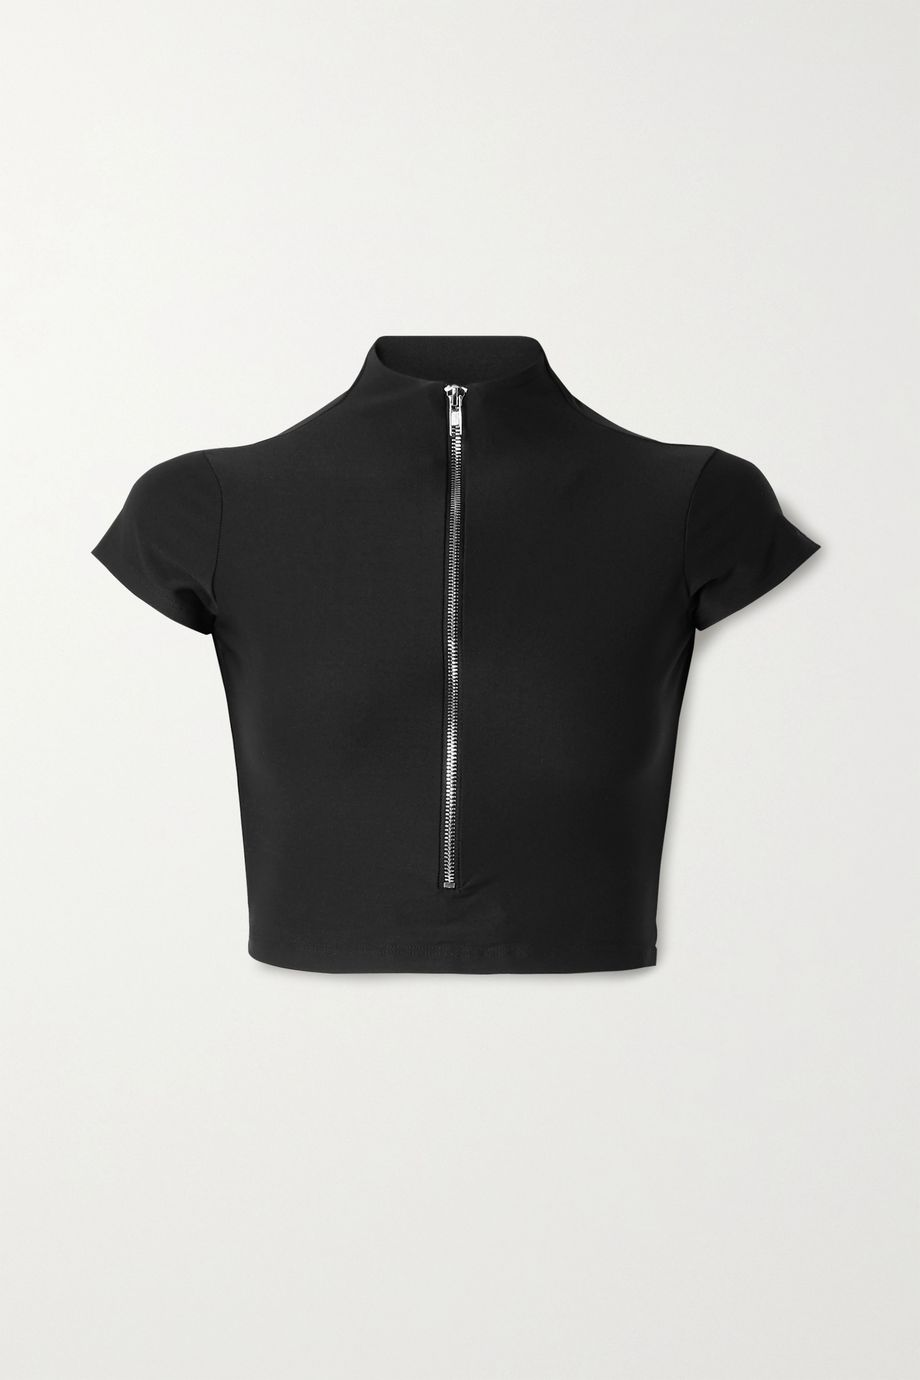 Alix NYC Charles cropped stretch-jersey top